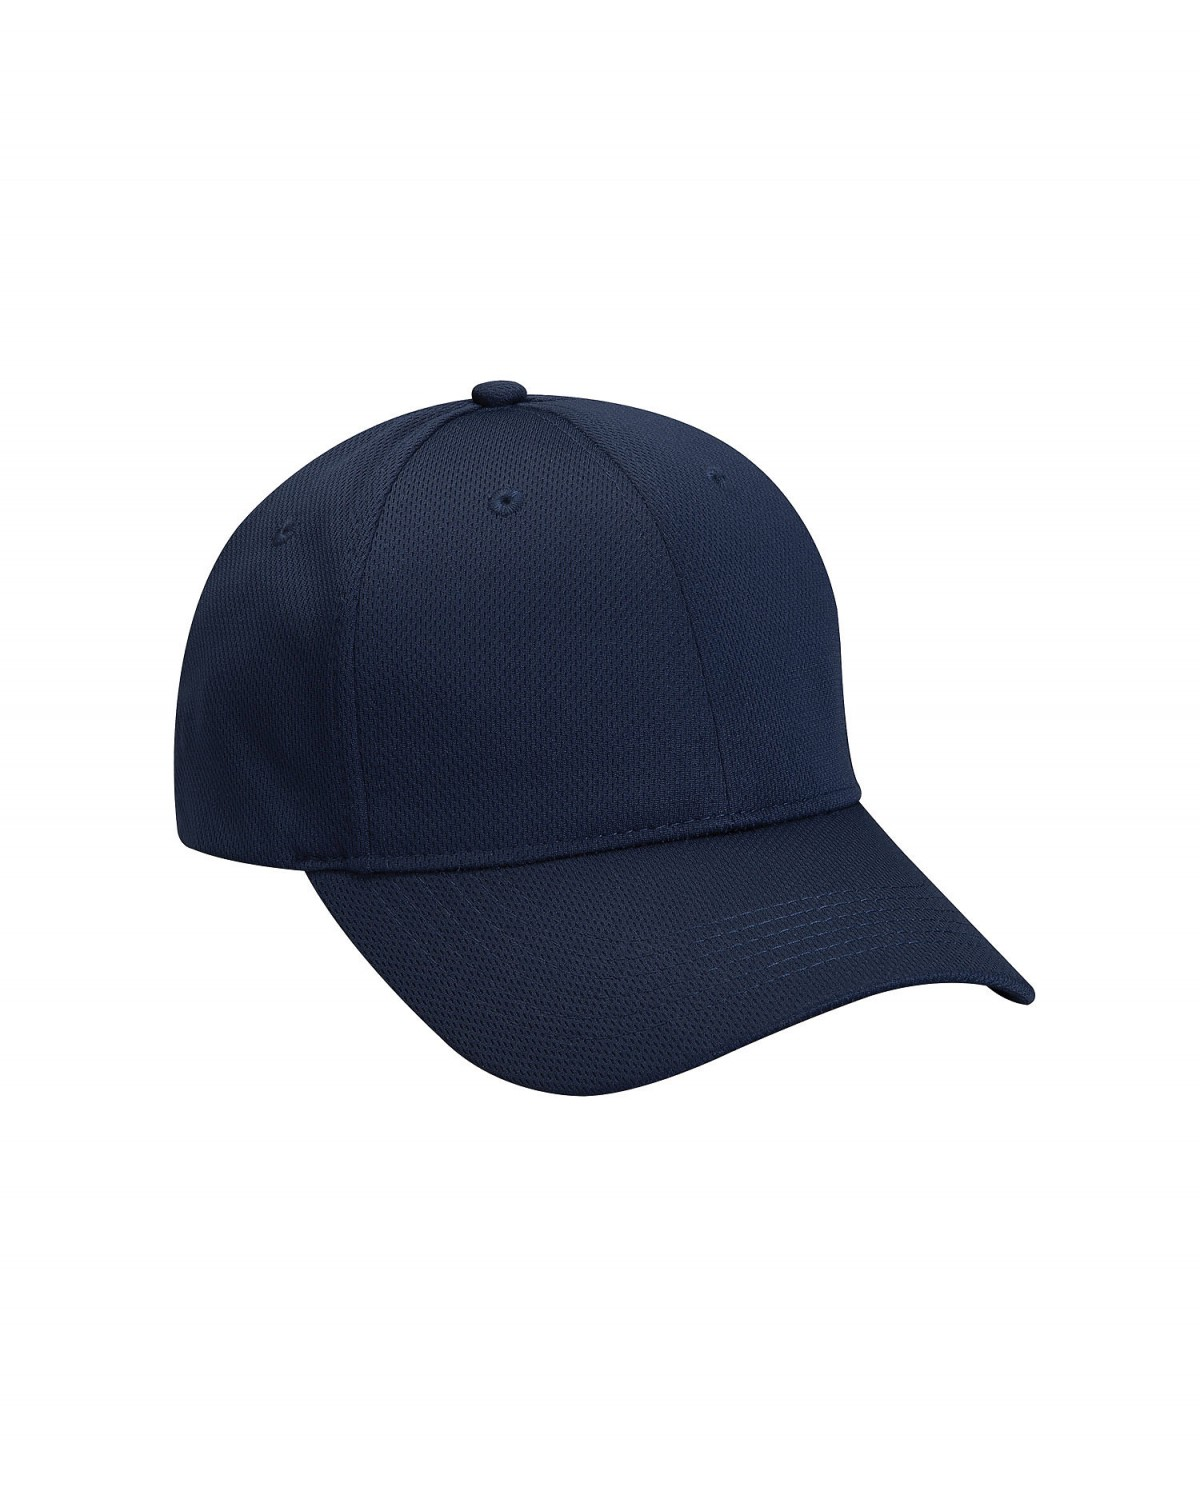 BG4129 Badger Sport NAVY/WHITE